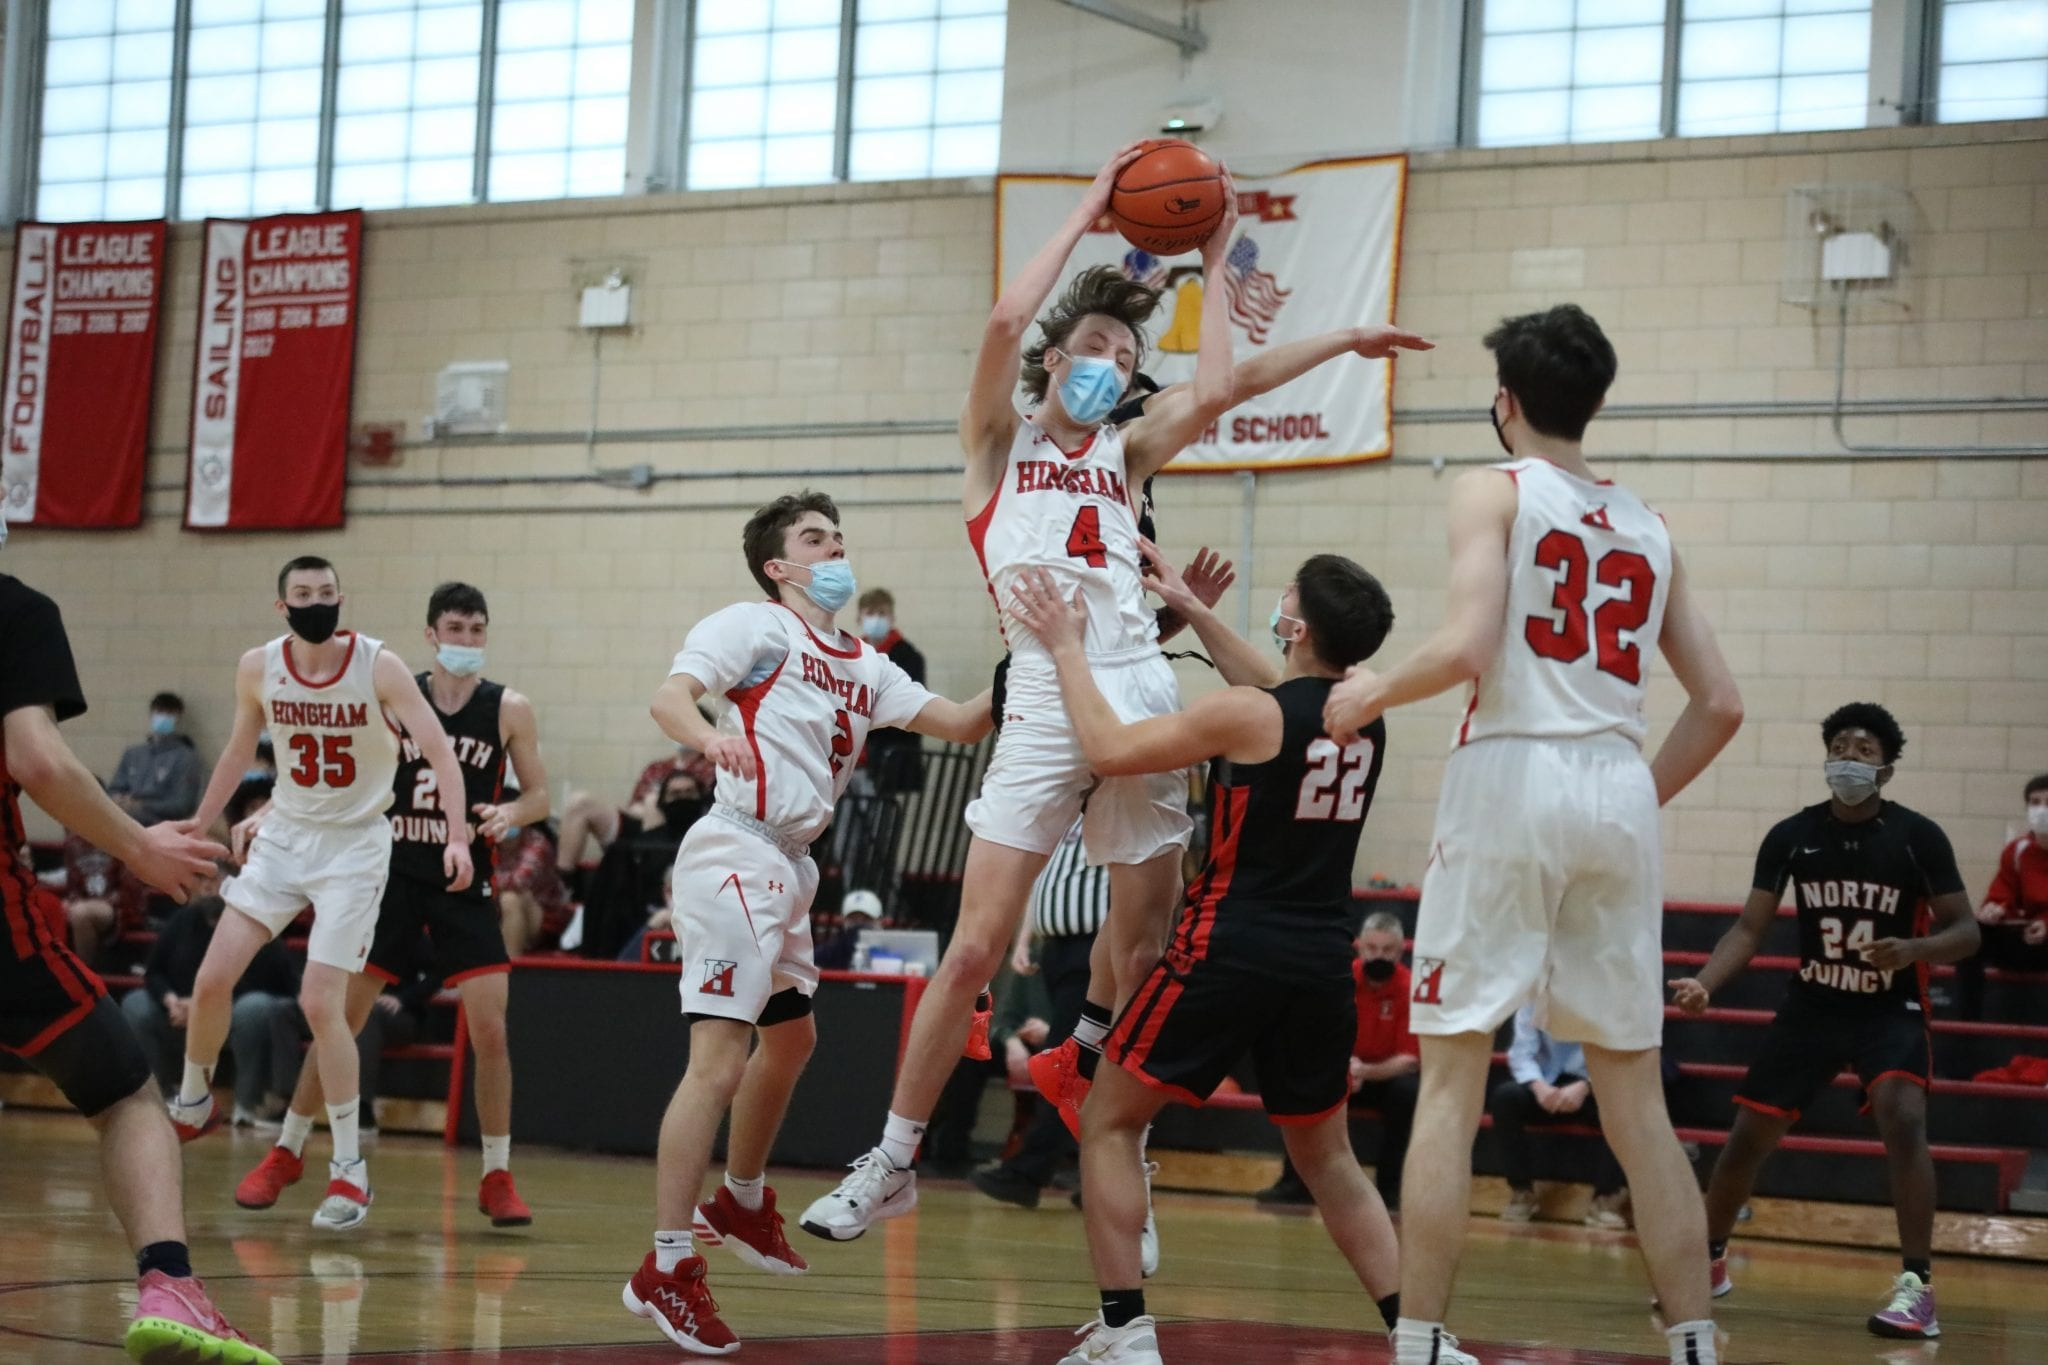 Junior Nick Johannes, who had a big night on both ends of the floor, grabs this rebound.